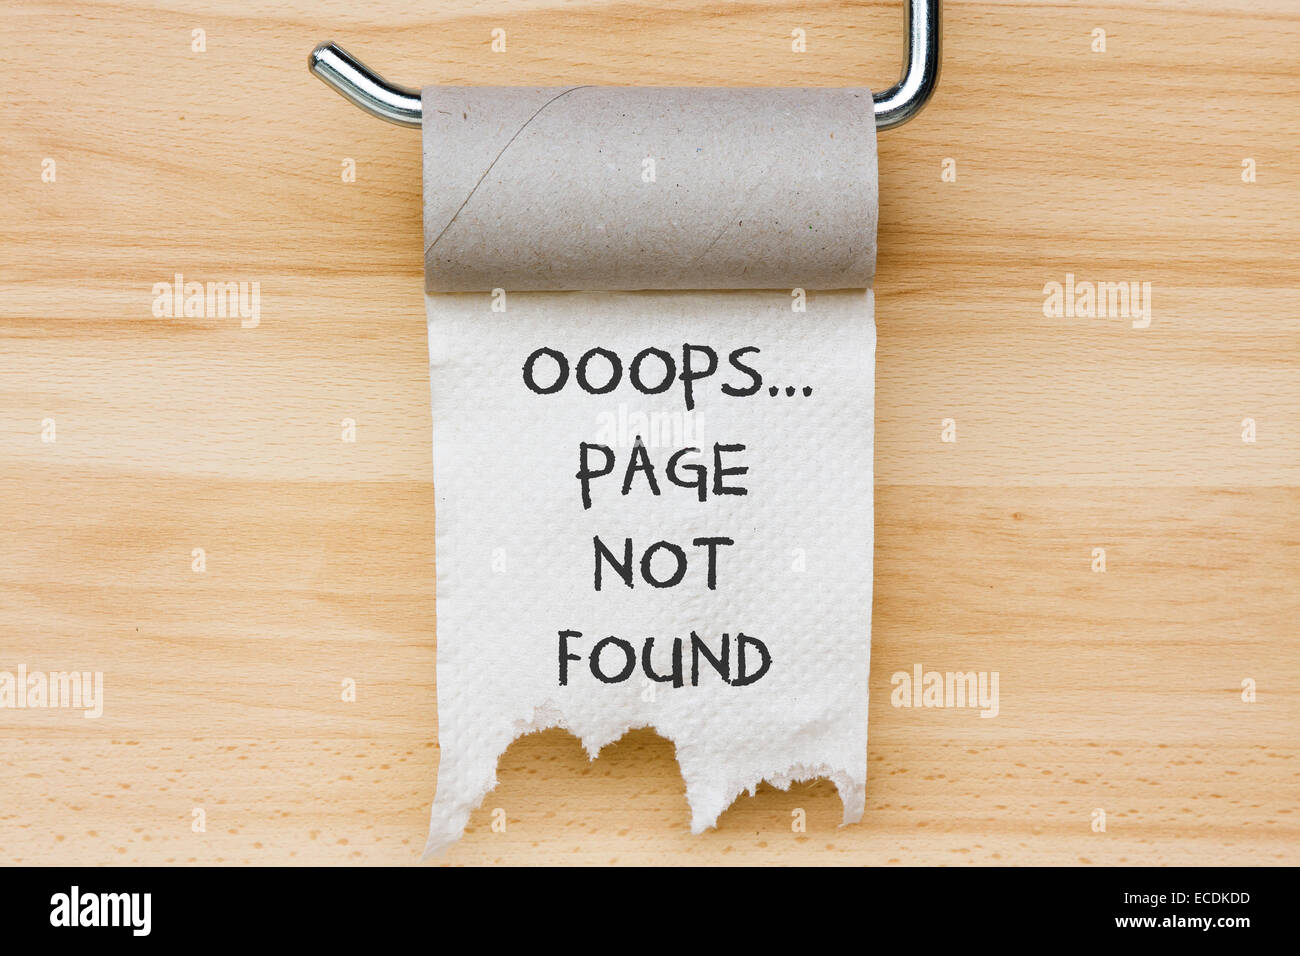 Page not found. Toilet paper as web message - Stock Image